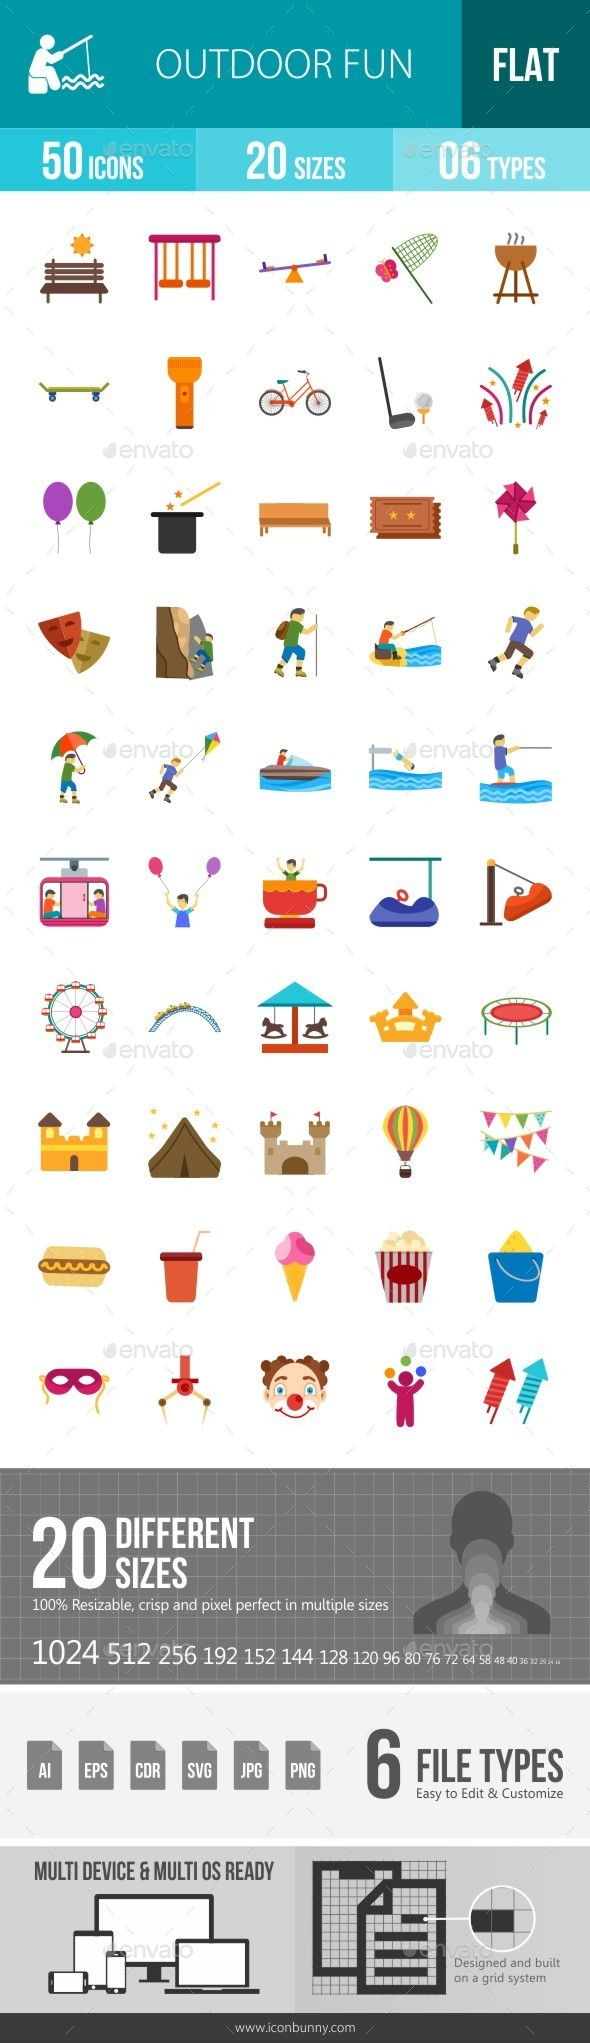 Outdoor Fun Flat Multicolor Icons - Icons